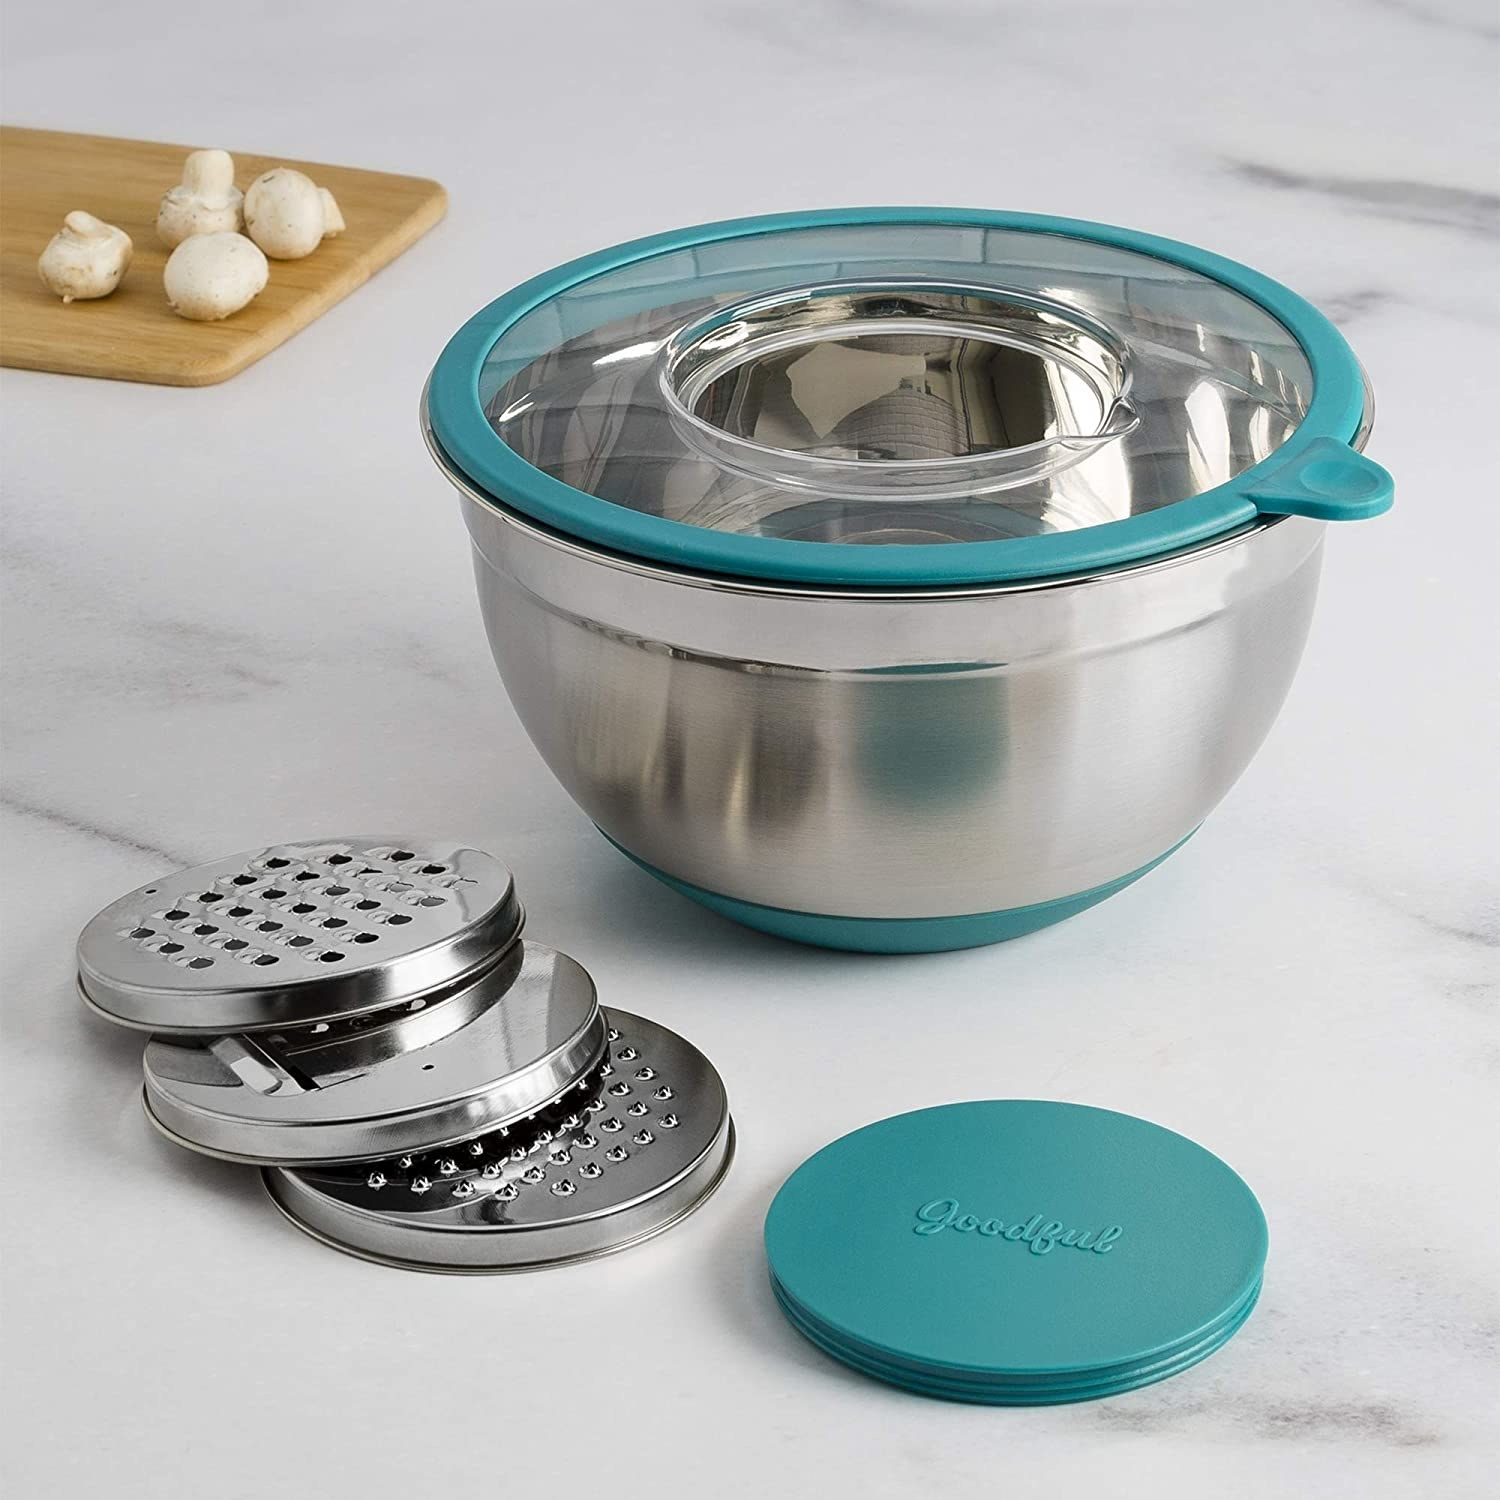 the bowl with the three grating attachment